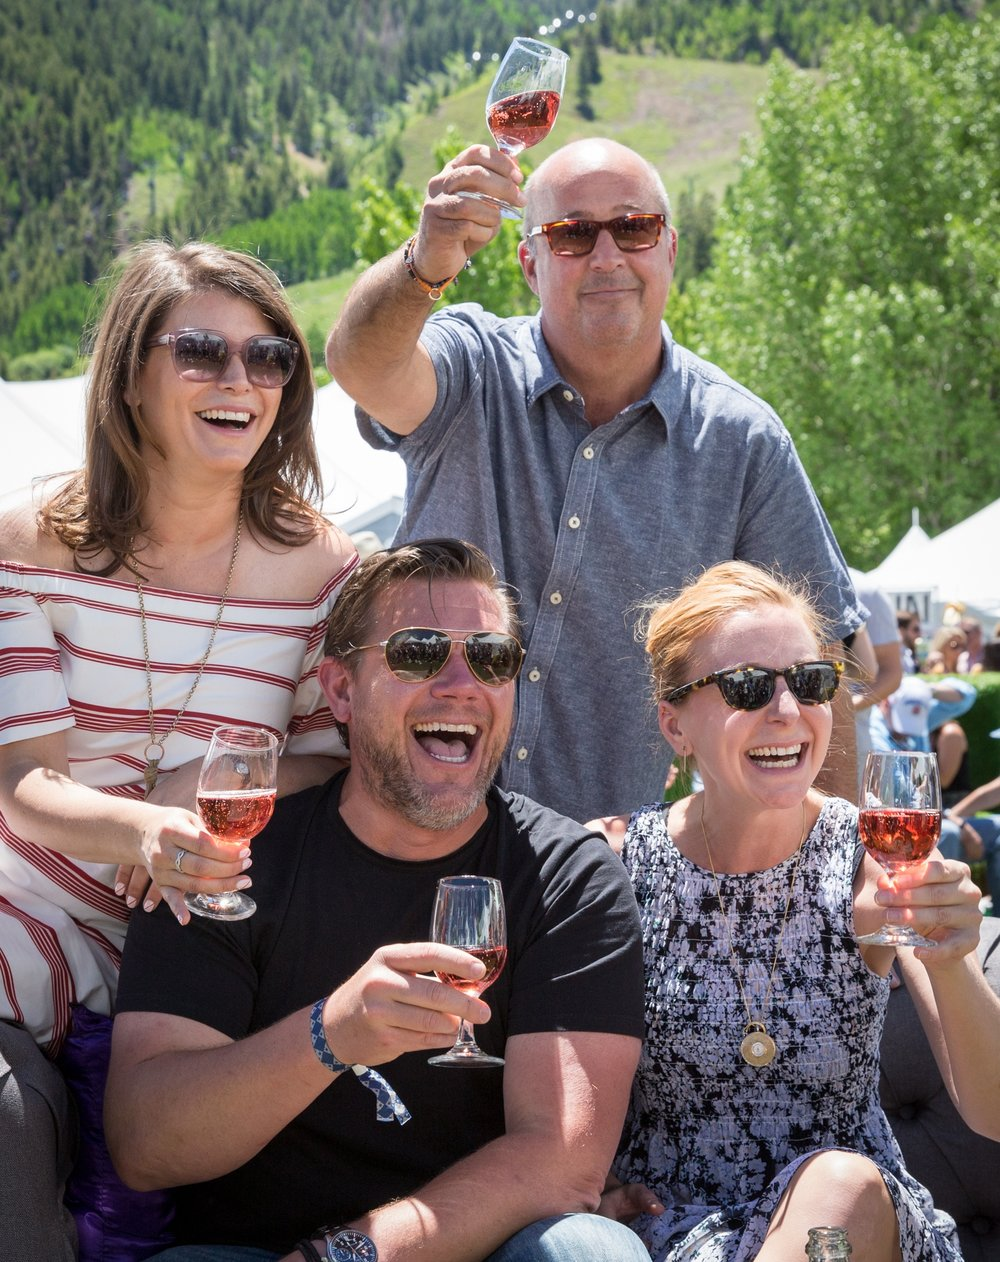 Gail Simmons, Andrew Zimmern, Tyler Florence and Christina Tosi at the 2017 FOOD & WINE Classic in Aspen